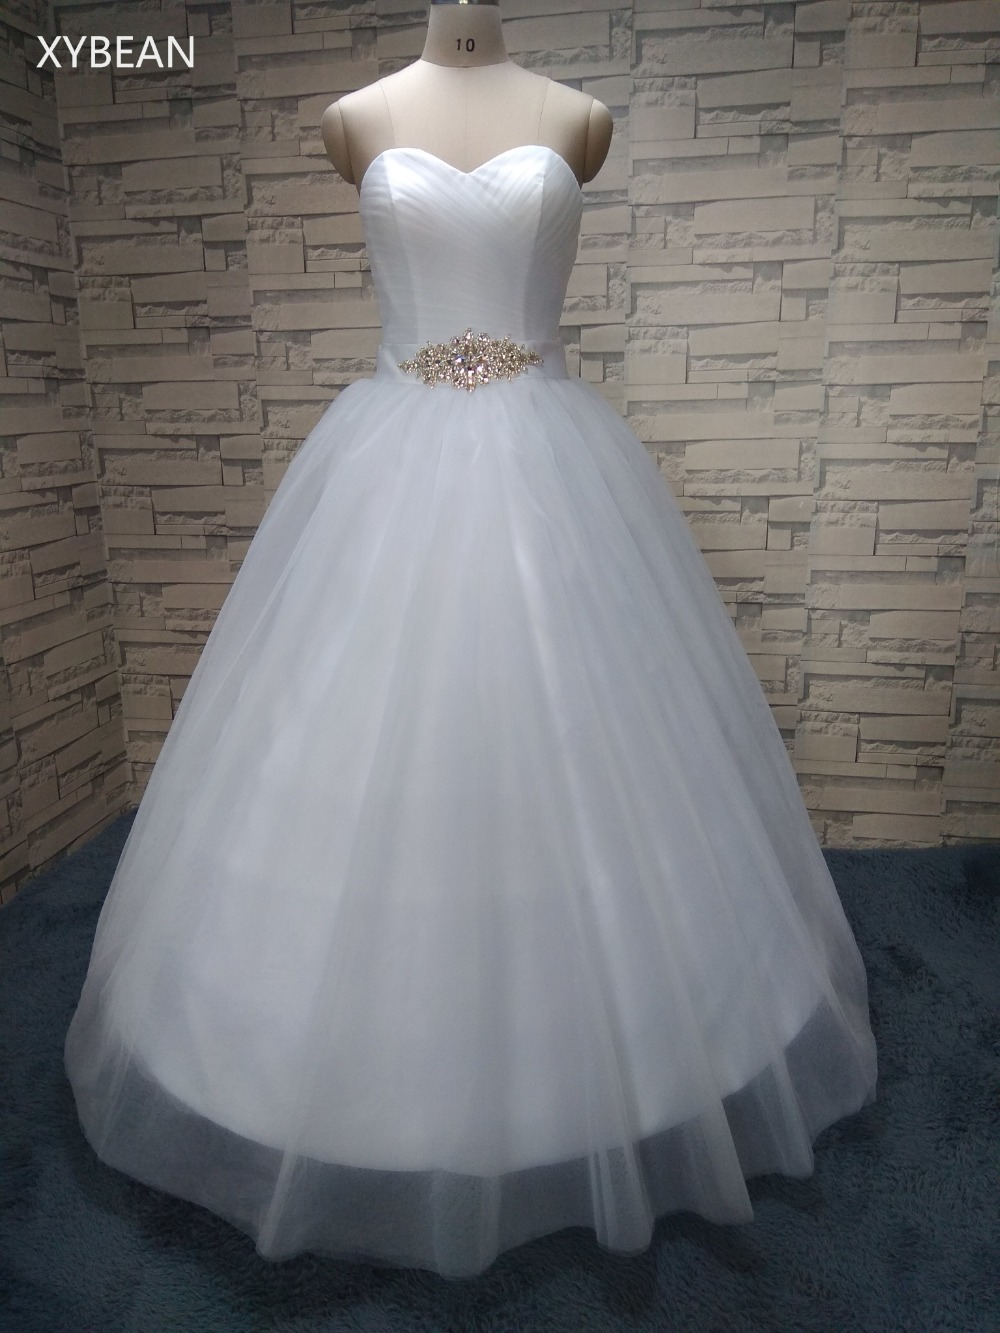 Free shipping 2018 new arrival bridal white ivory wedding for Wedding dress free shipping